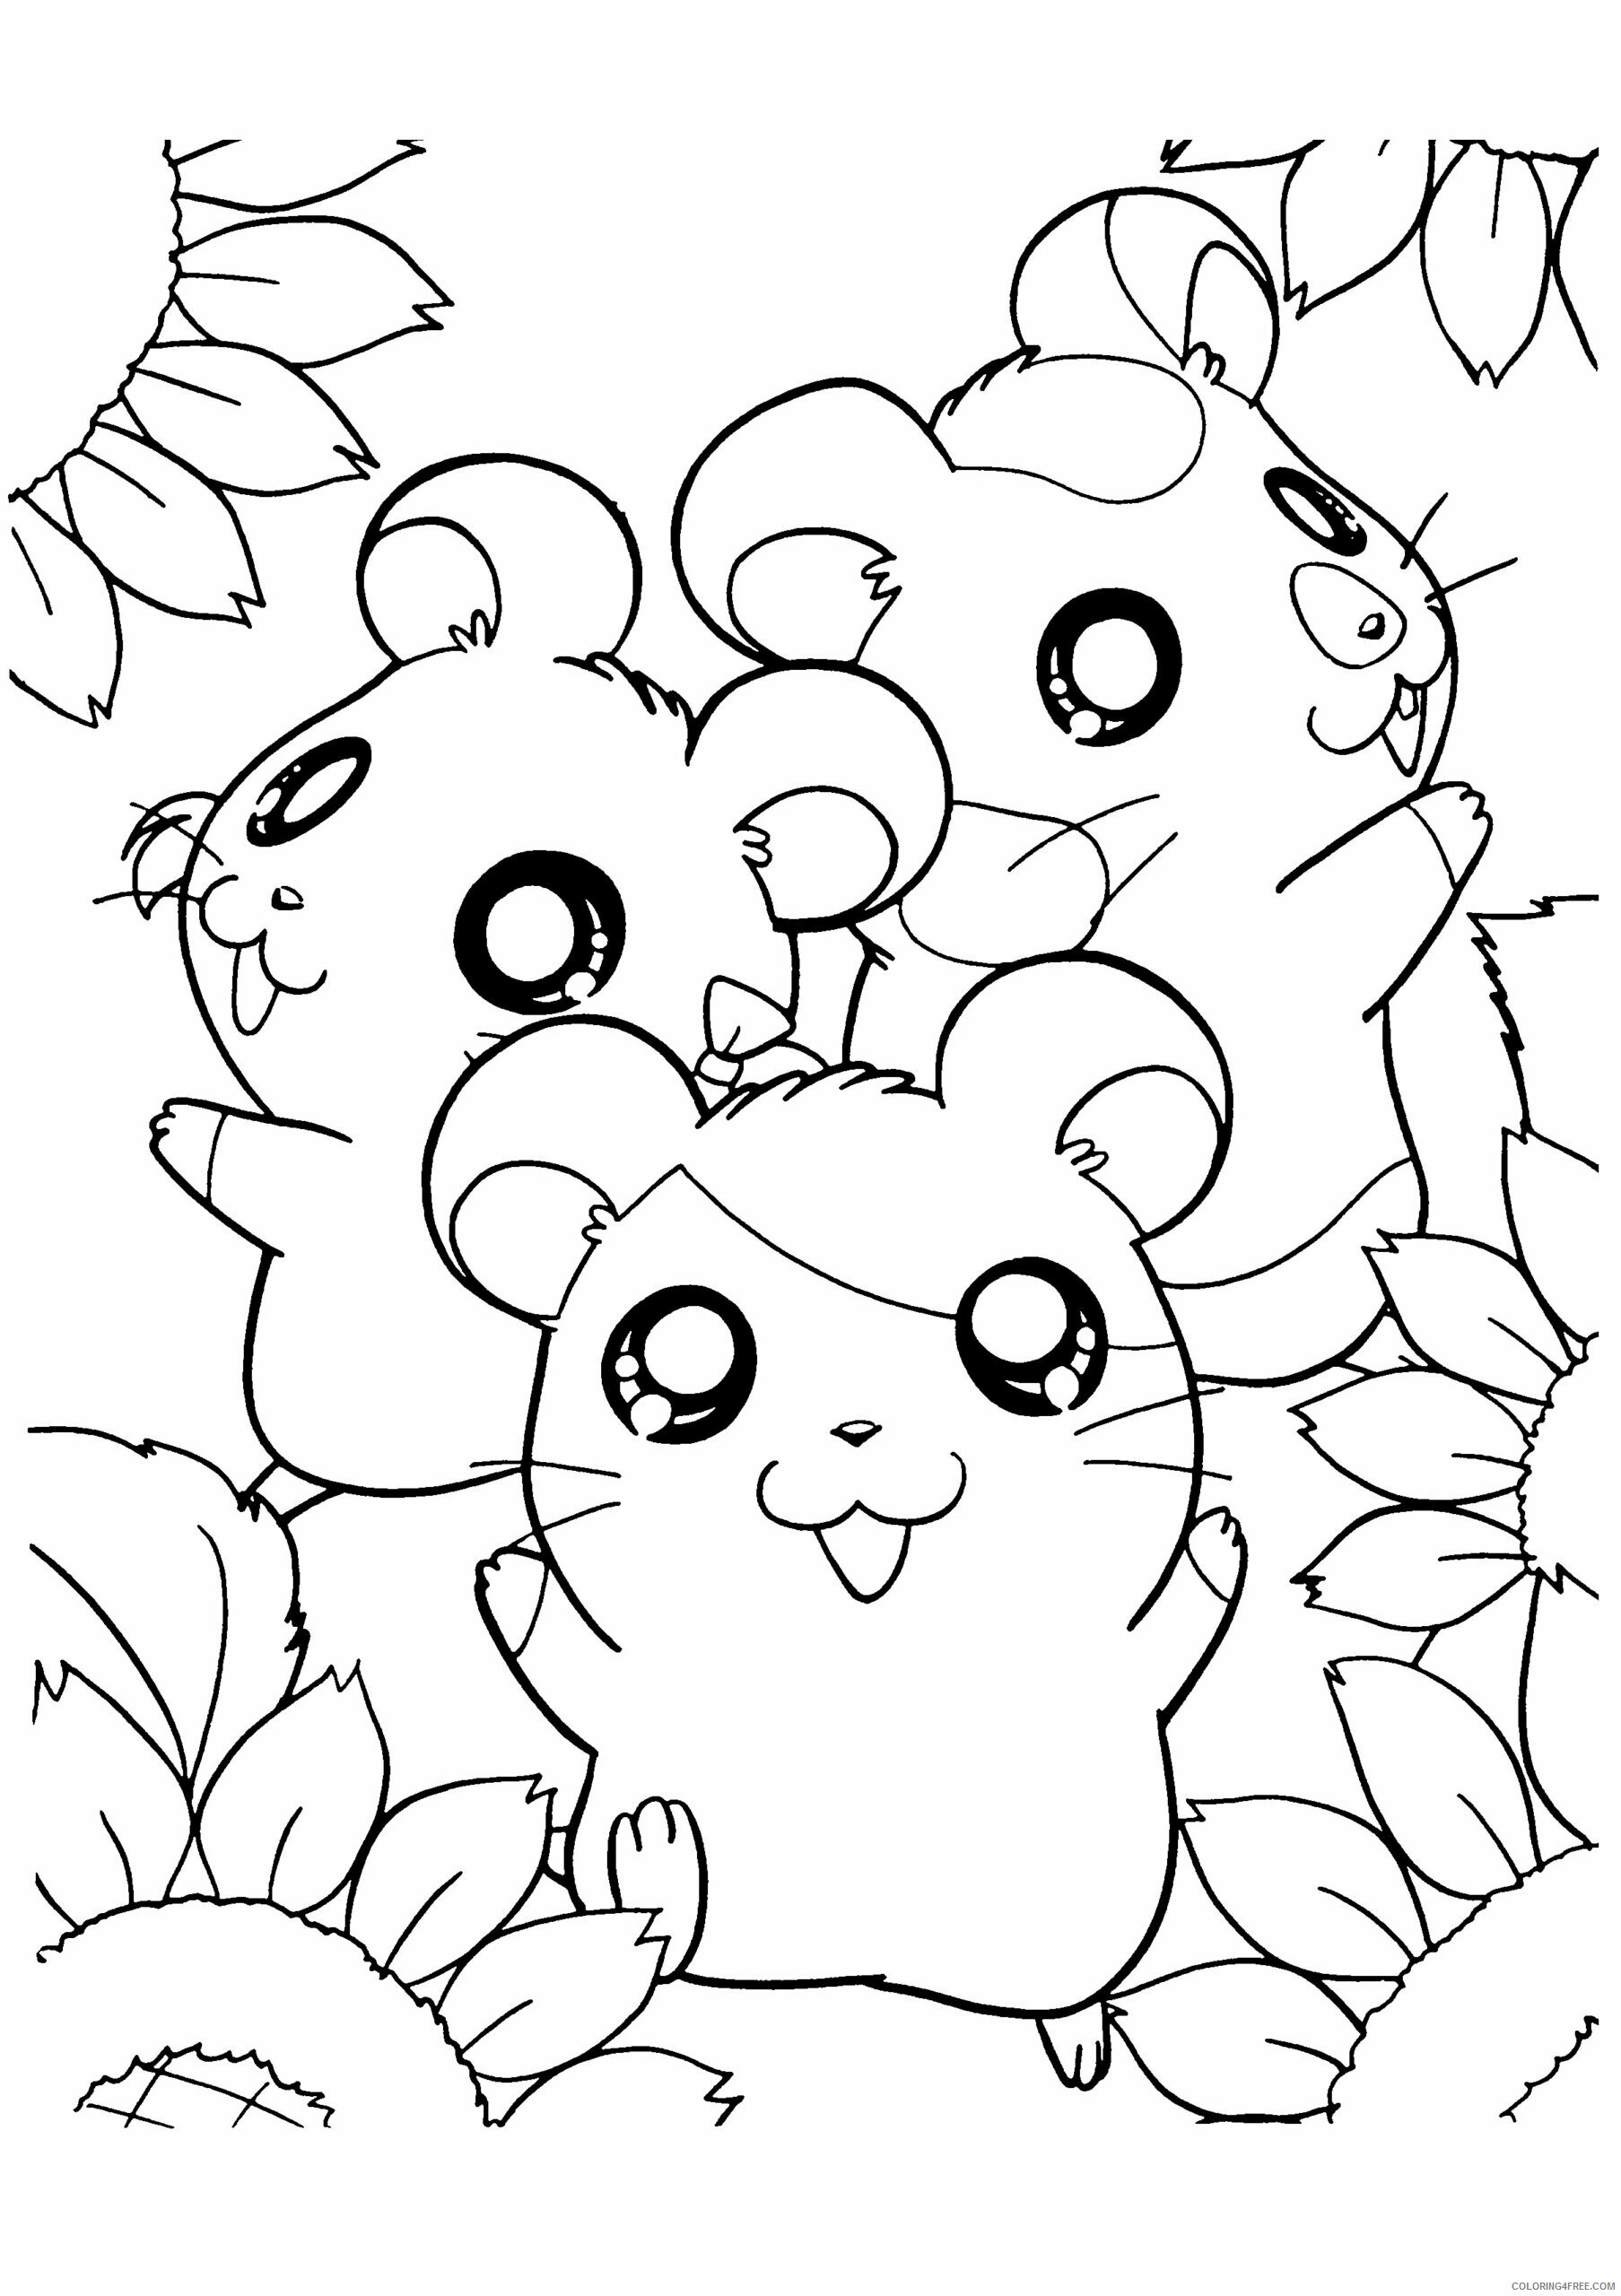 Hamster Coloring Pages Animal Printable Sheets hamster B48PA 2021 2571 Coloring4free